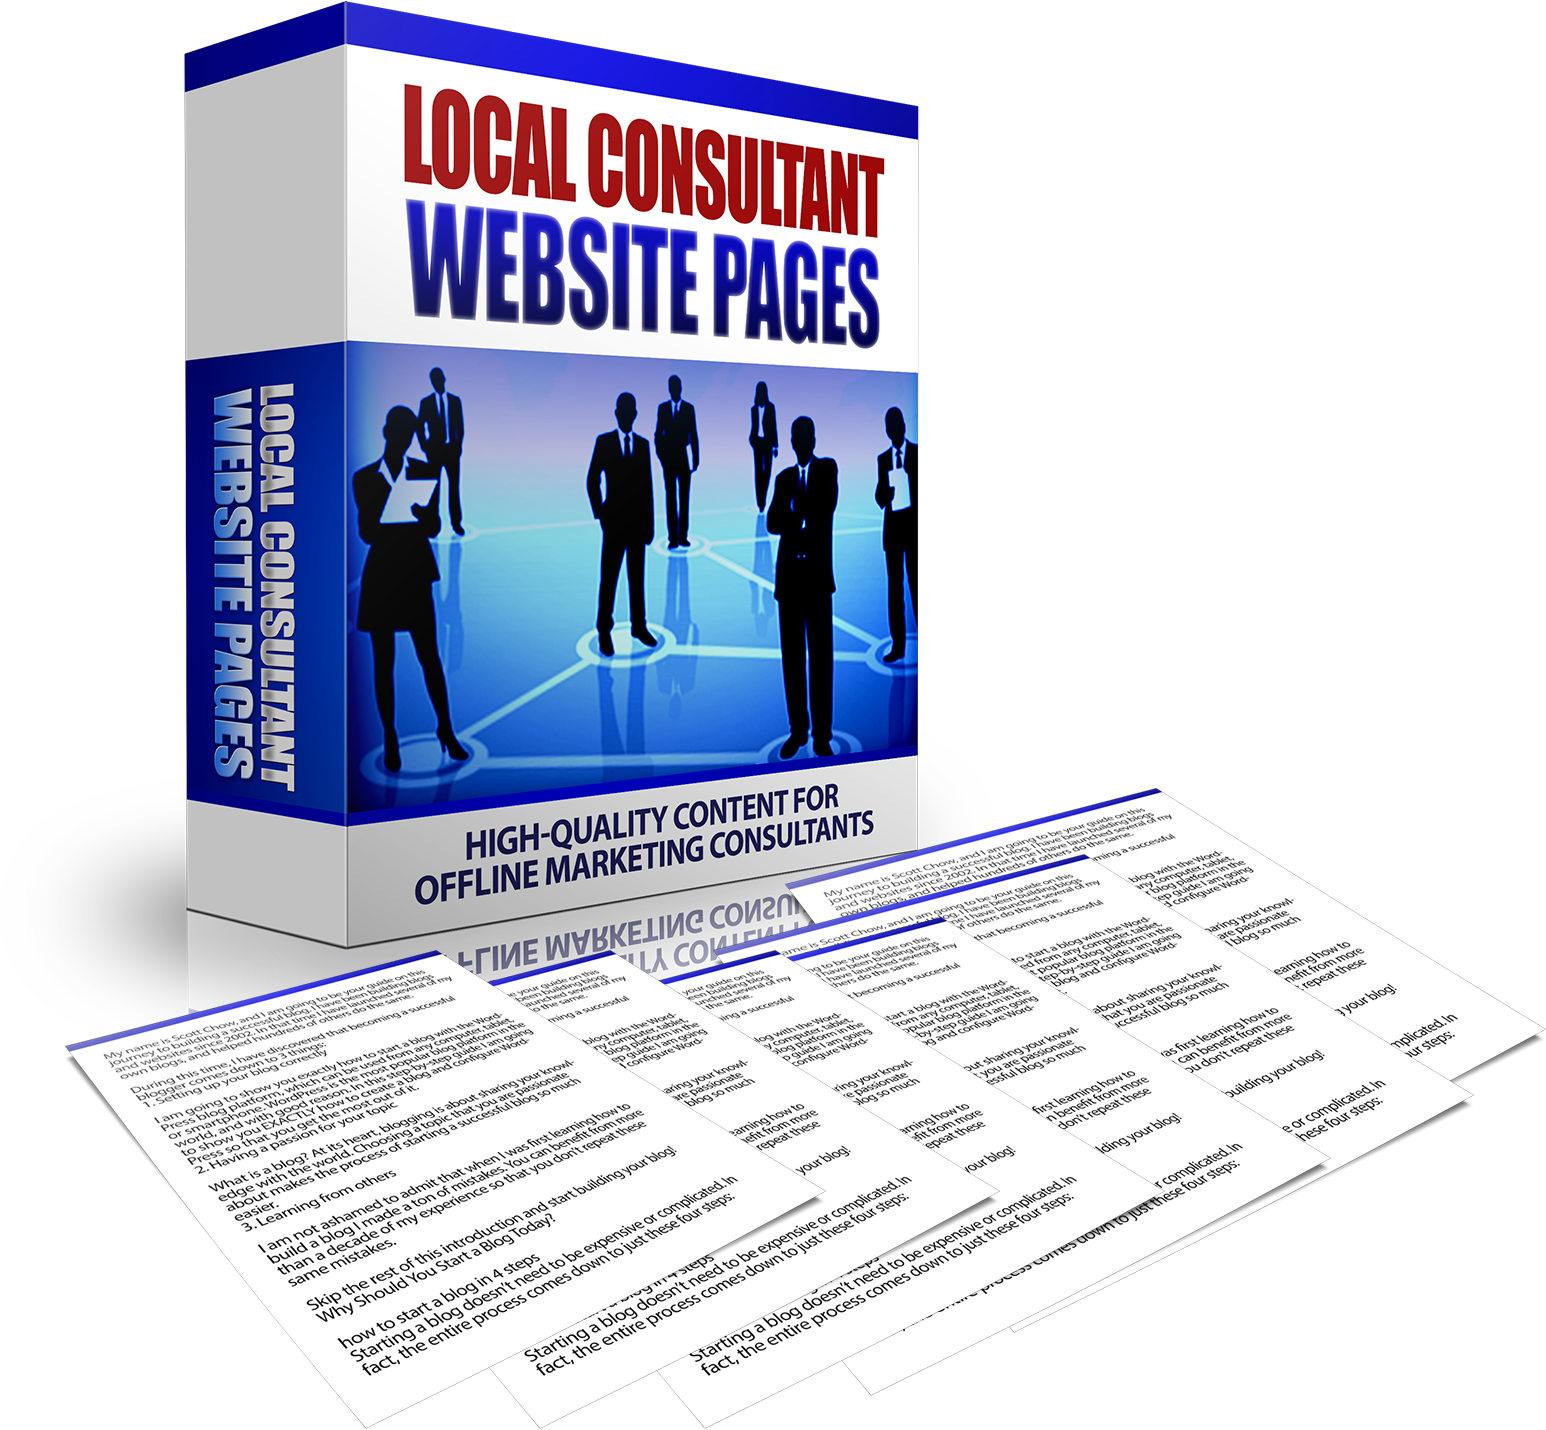 [Image: Local_Consultant_Website_Pages_04.png]